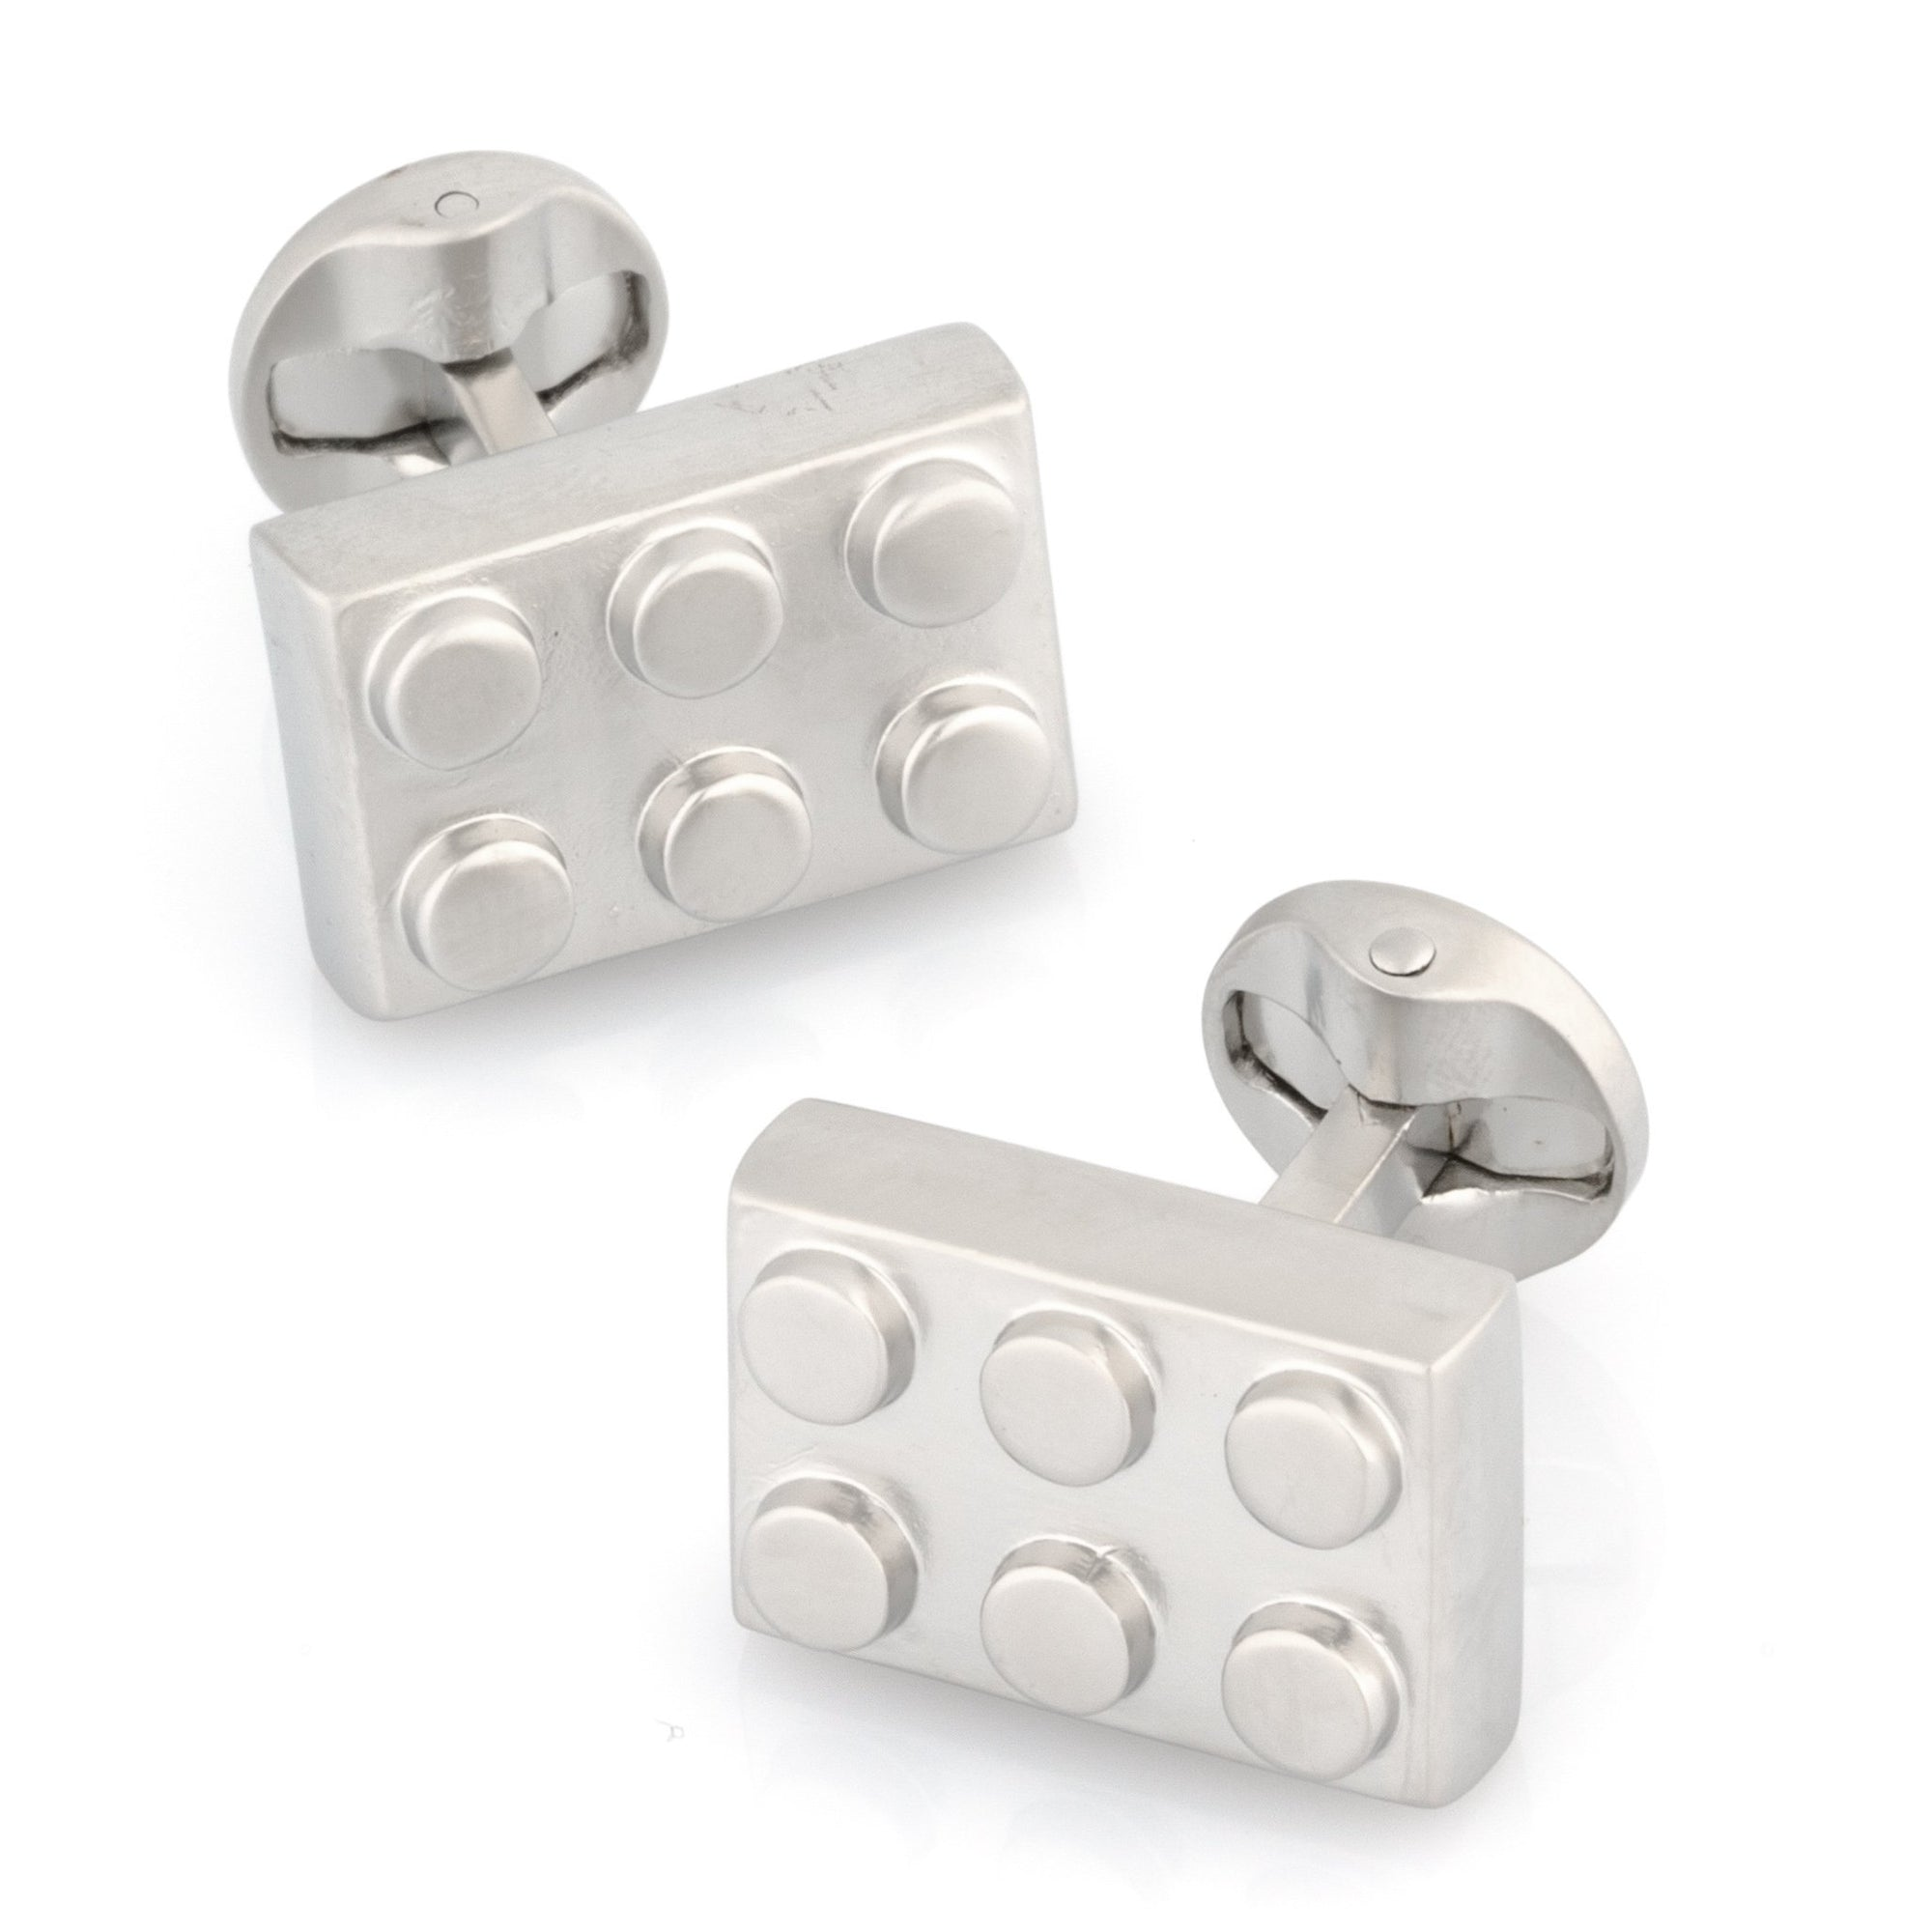 Silver Building Block Cufflinks, Novelty Cufflinks, Cuffed.com.au, CL8711, Games, Lego® Style Building Block Cufflinks, Silver, Clinks Australia